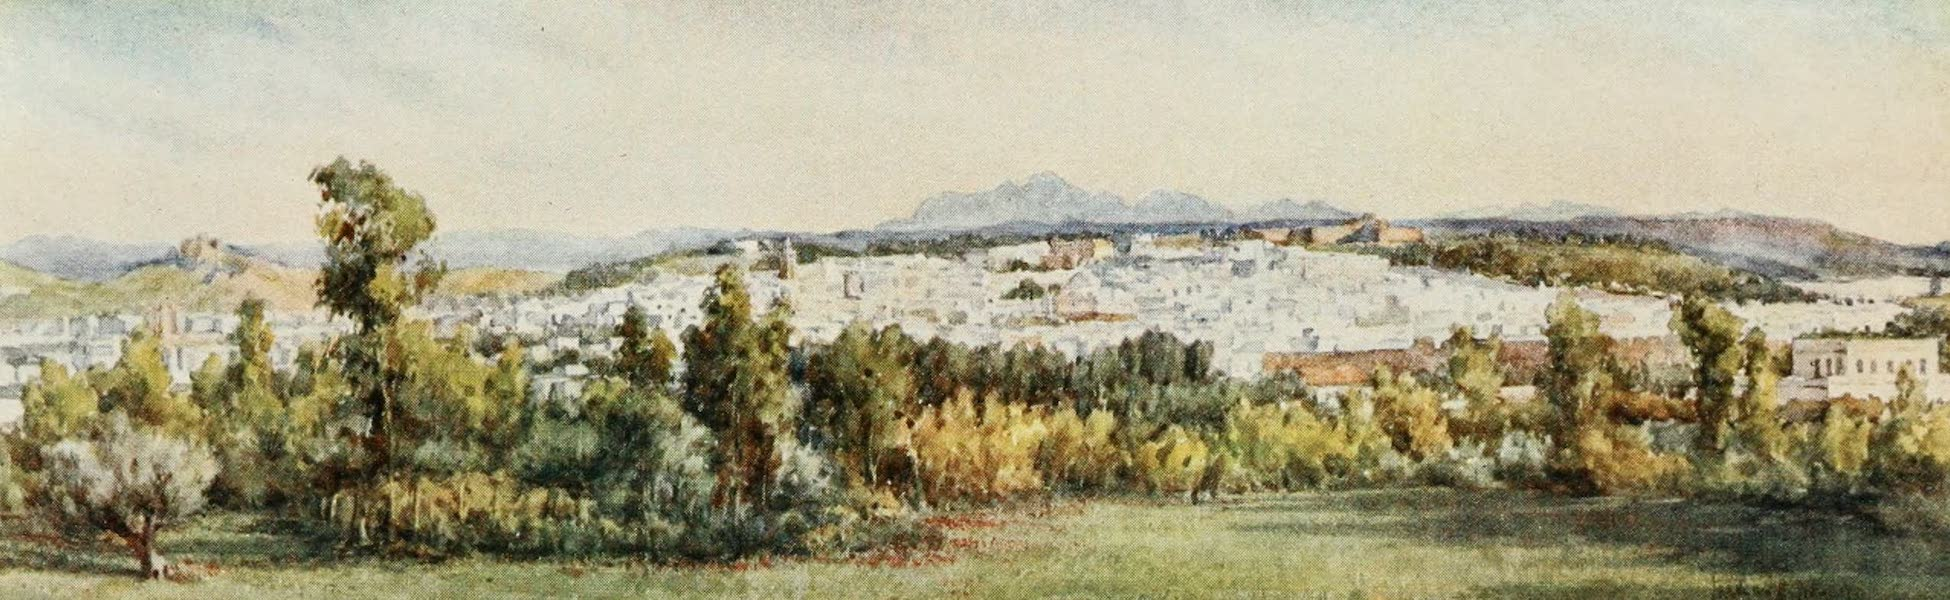 Tunis from the Belvedere